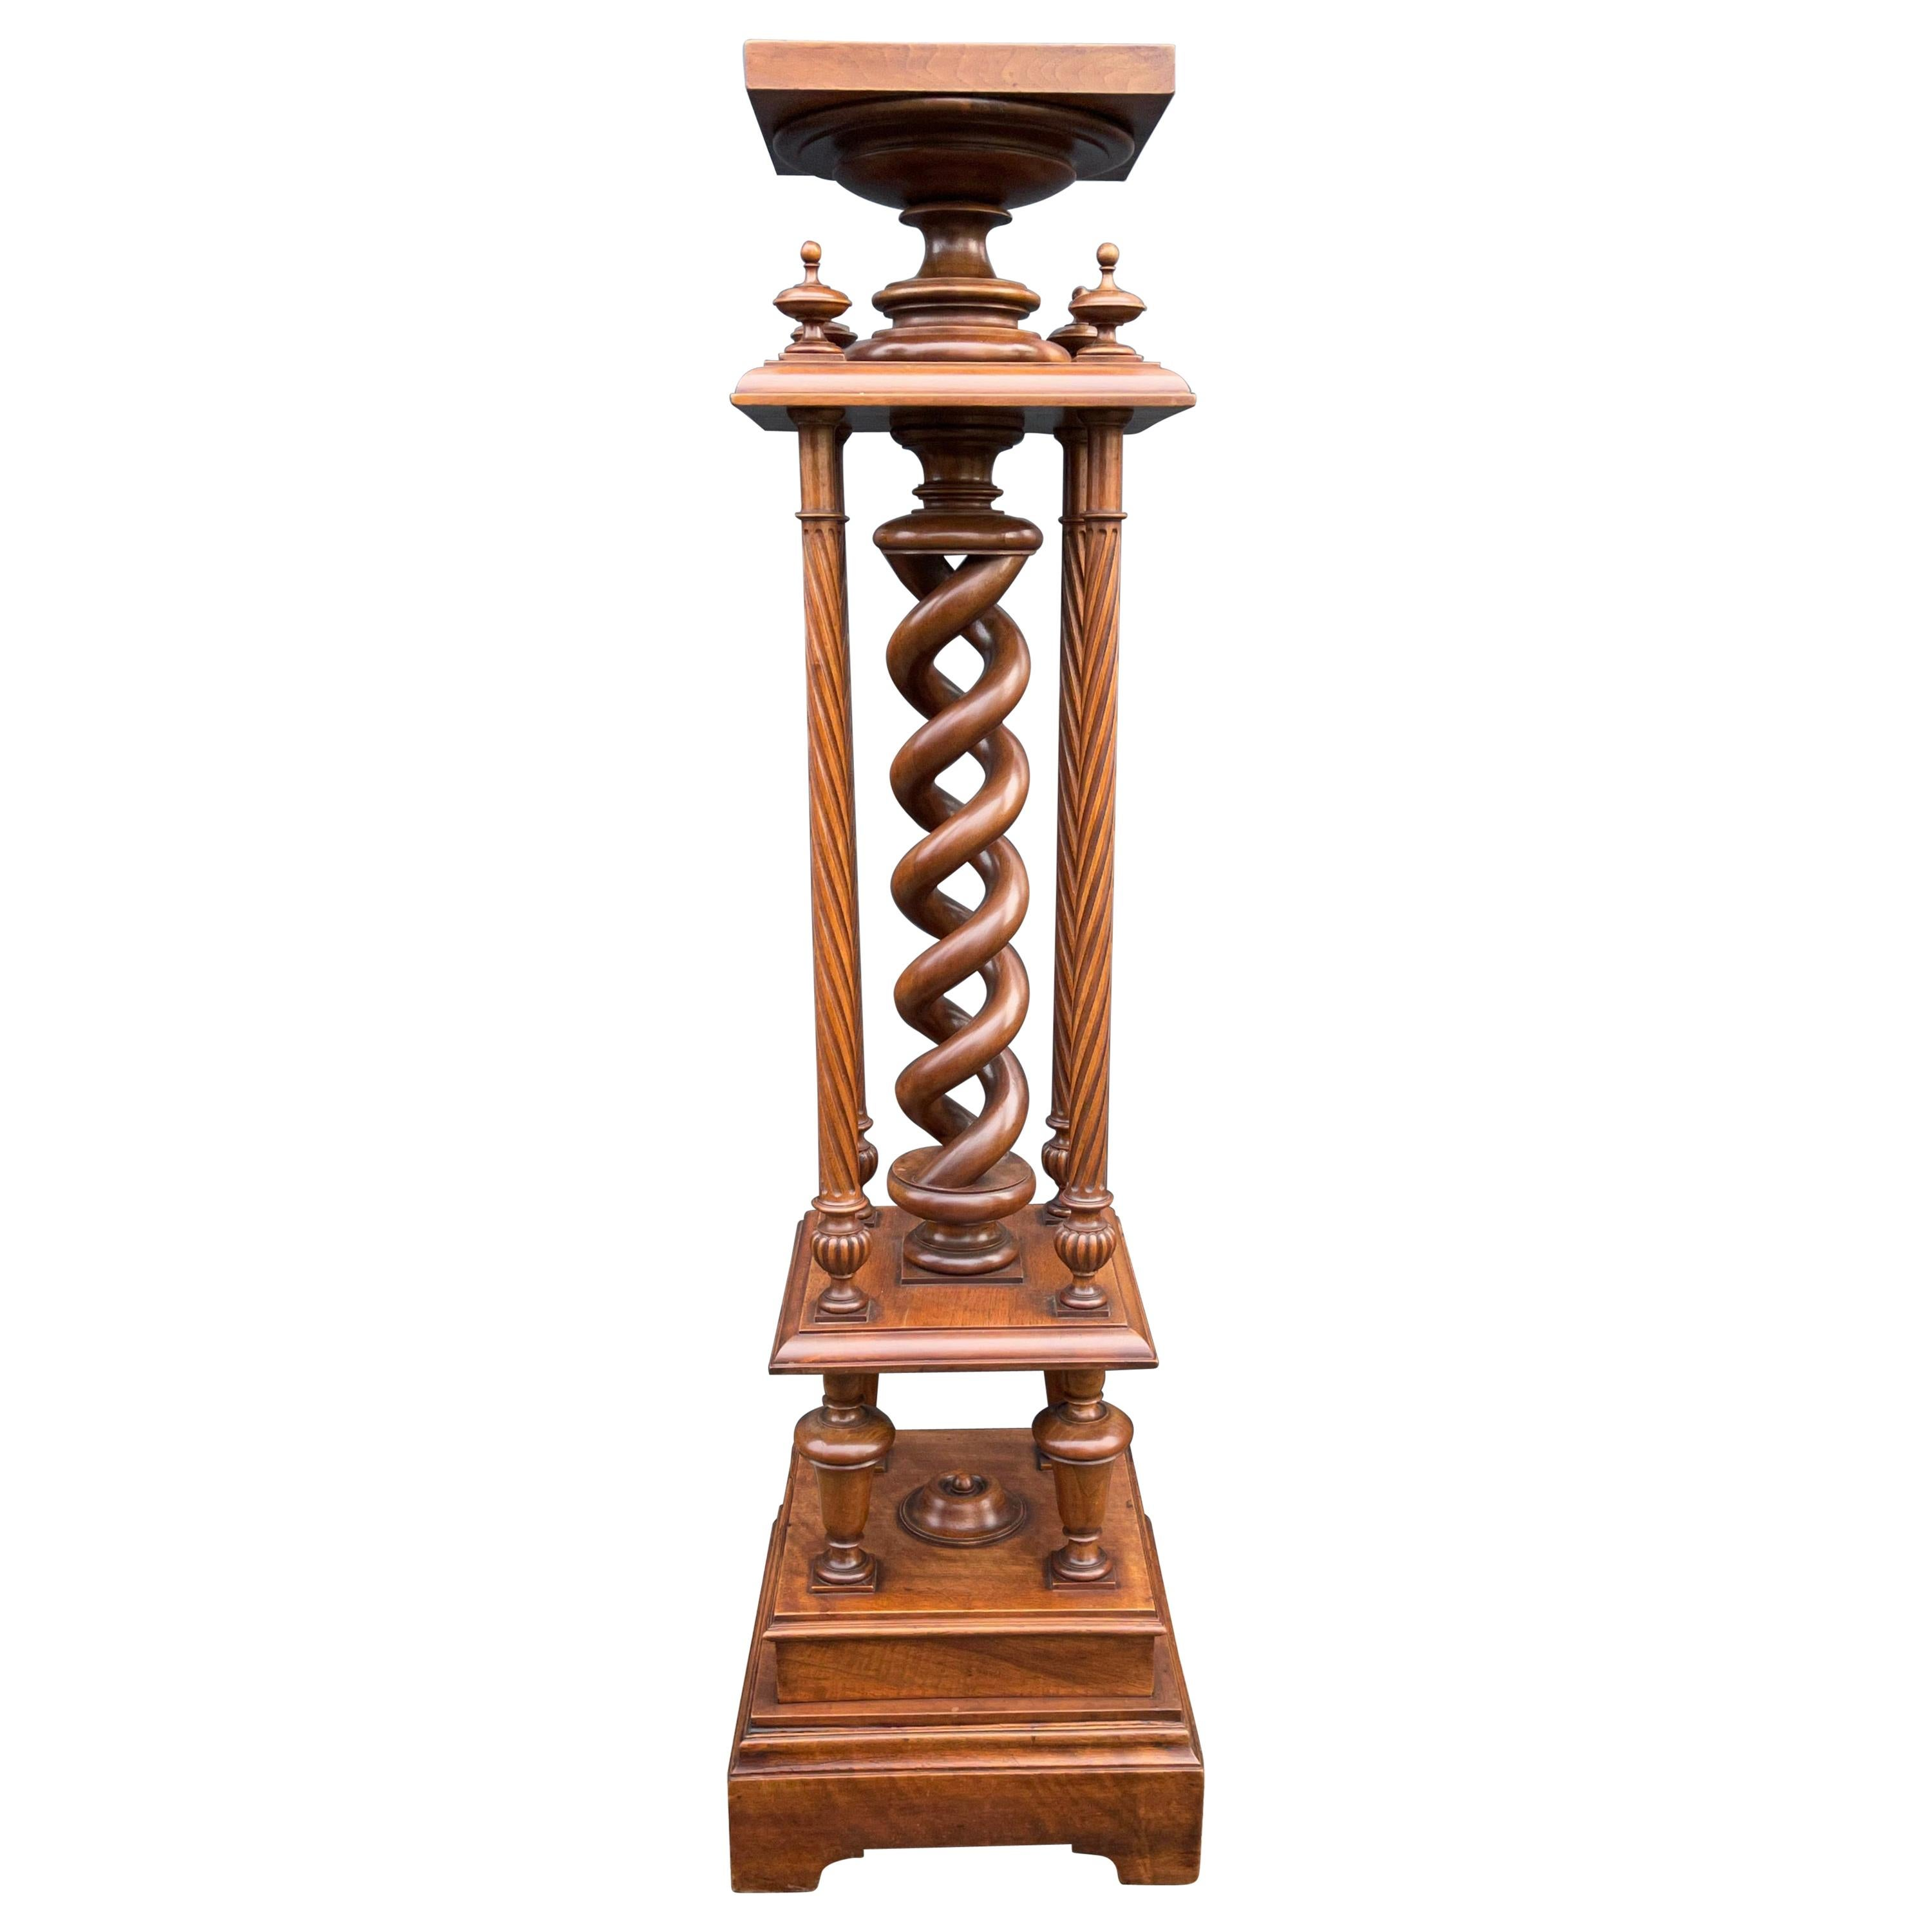 Wonderful Antique Victorian Sculpture Pedestal Stand Made of Solid Nutwood